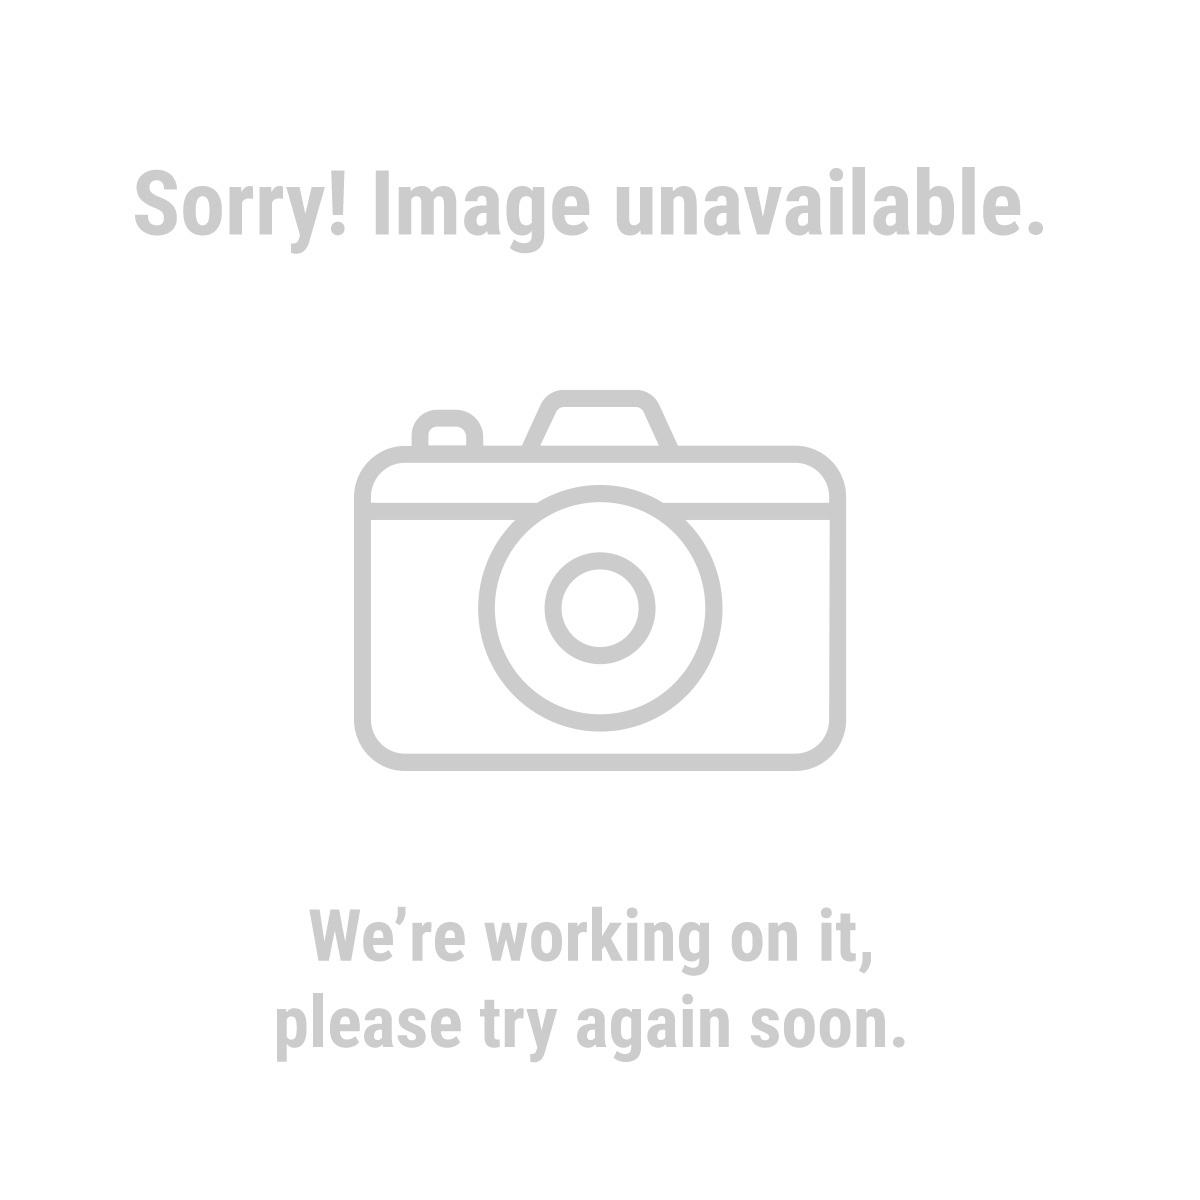 Predator Outdoor Power Equipment 62201 2500 PSI, 2.4 GPM, 4 HP (160cc) Pressure Washer EPA/CARB